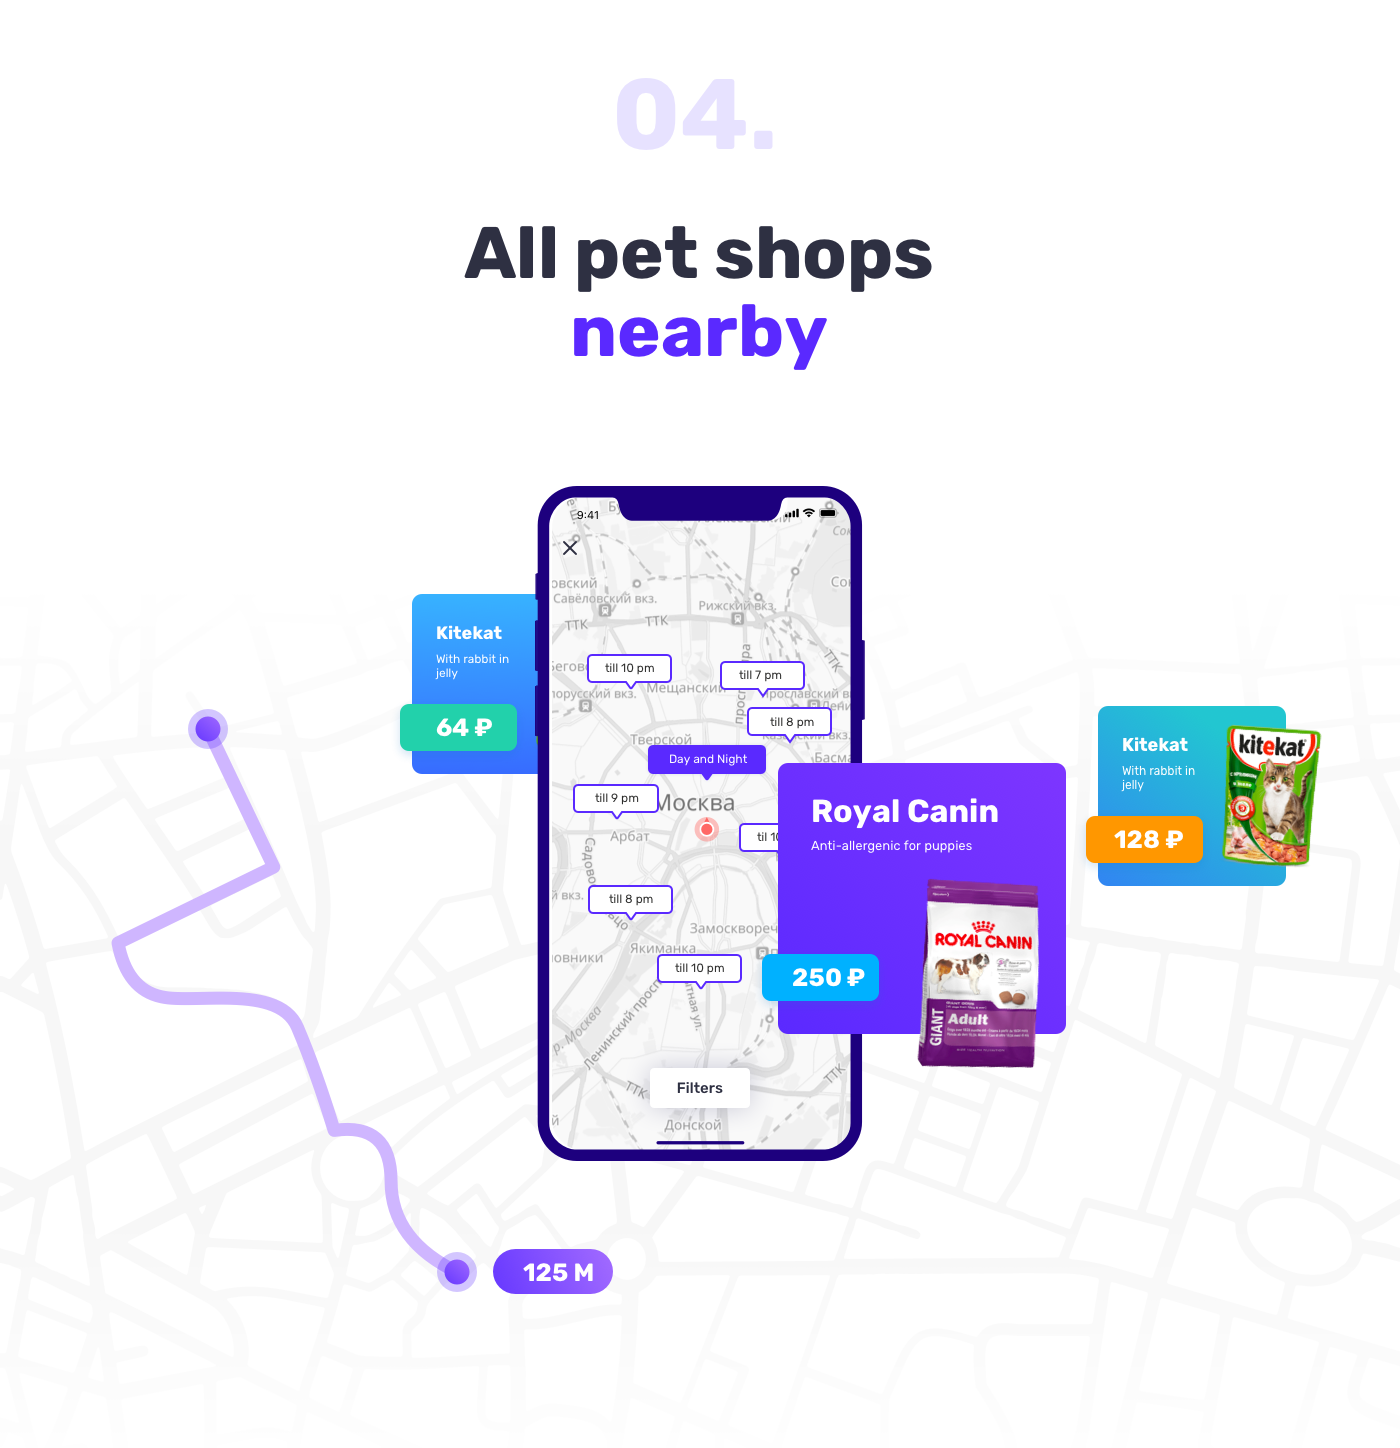 student,pets,app,ios,mobile,design,Platform,UI,ux,interaction